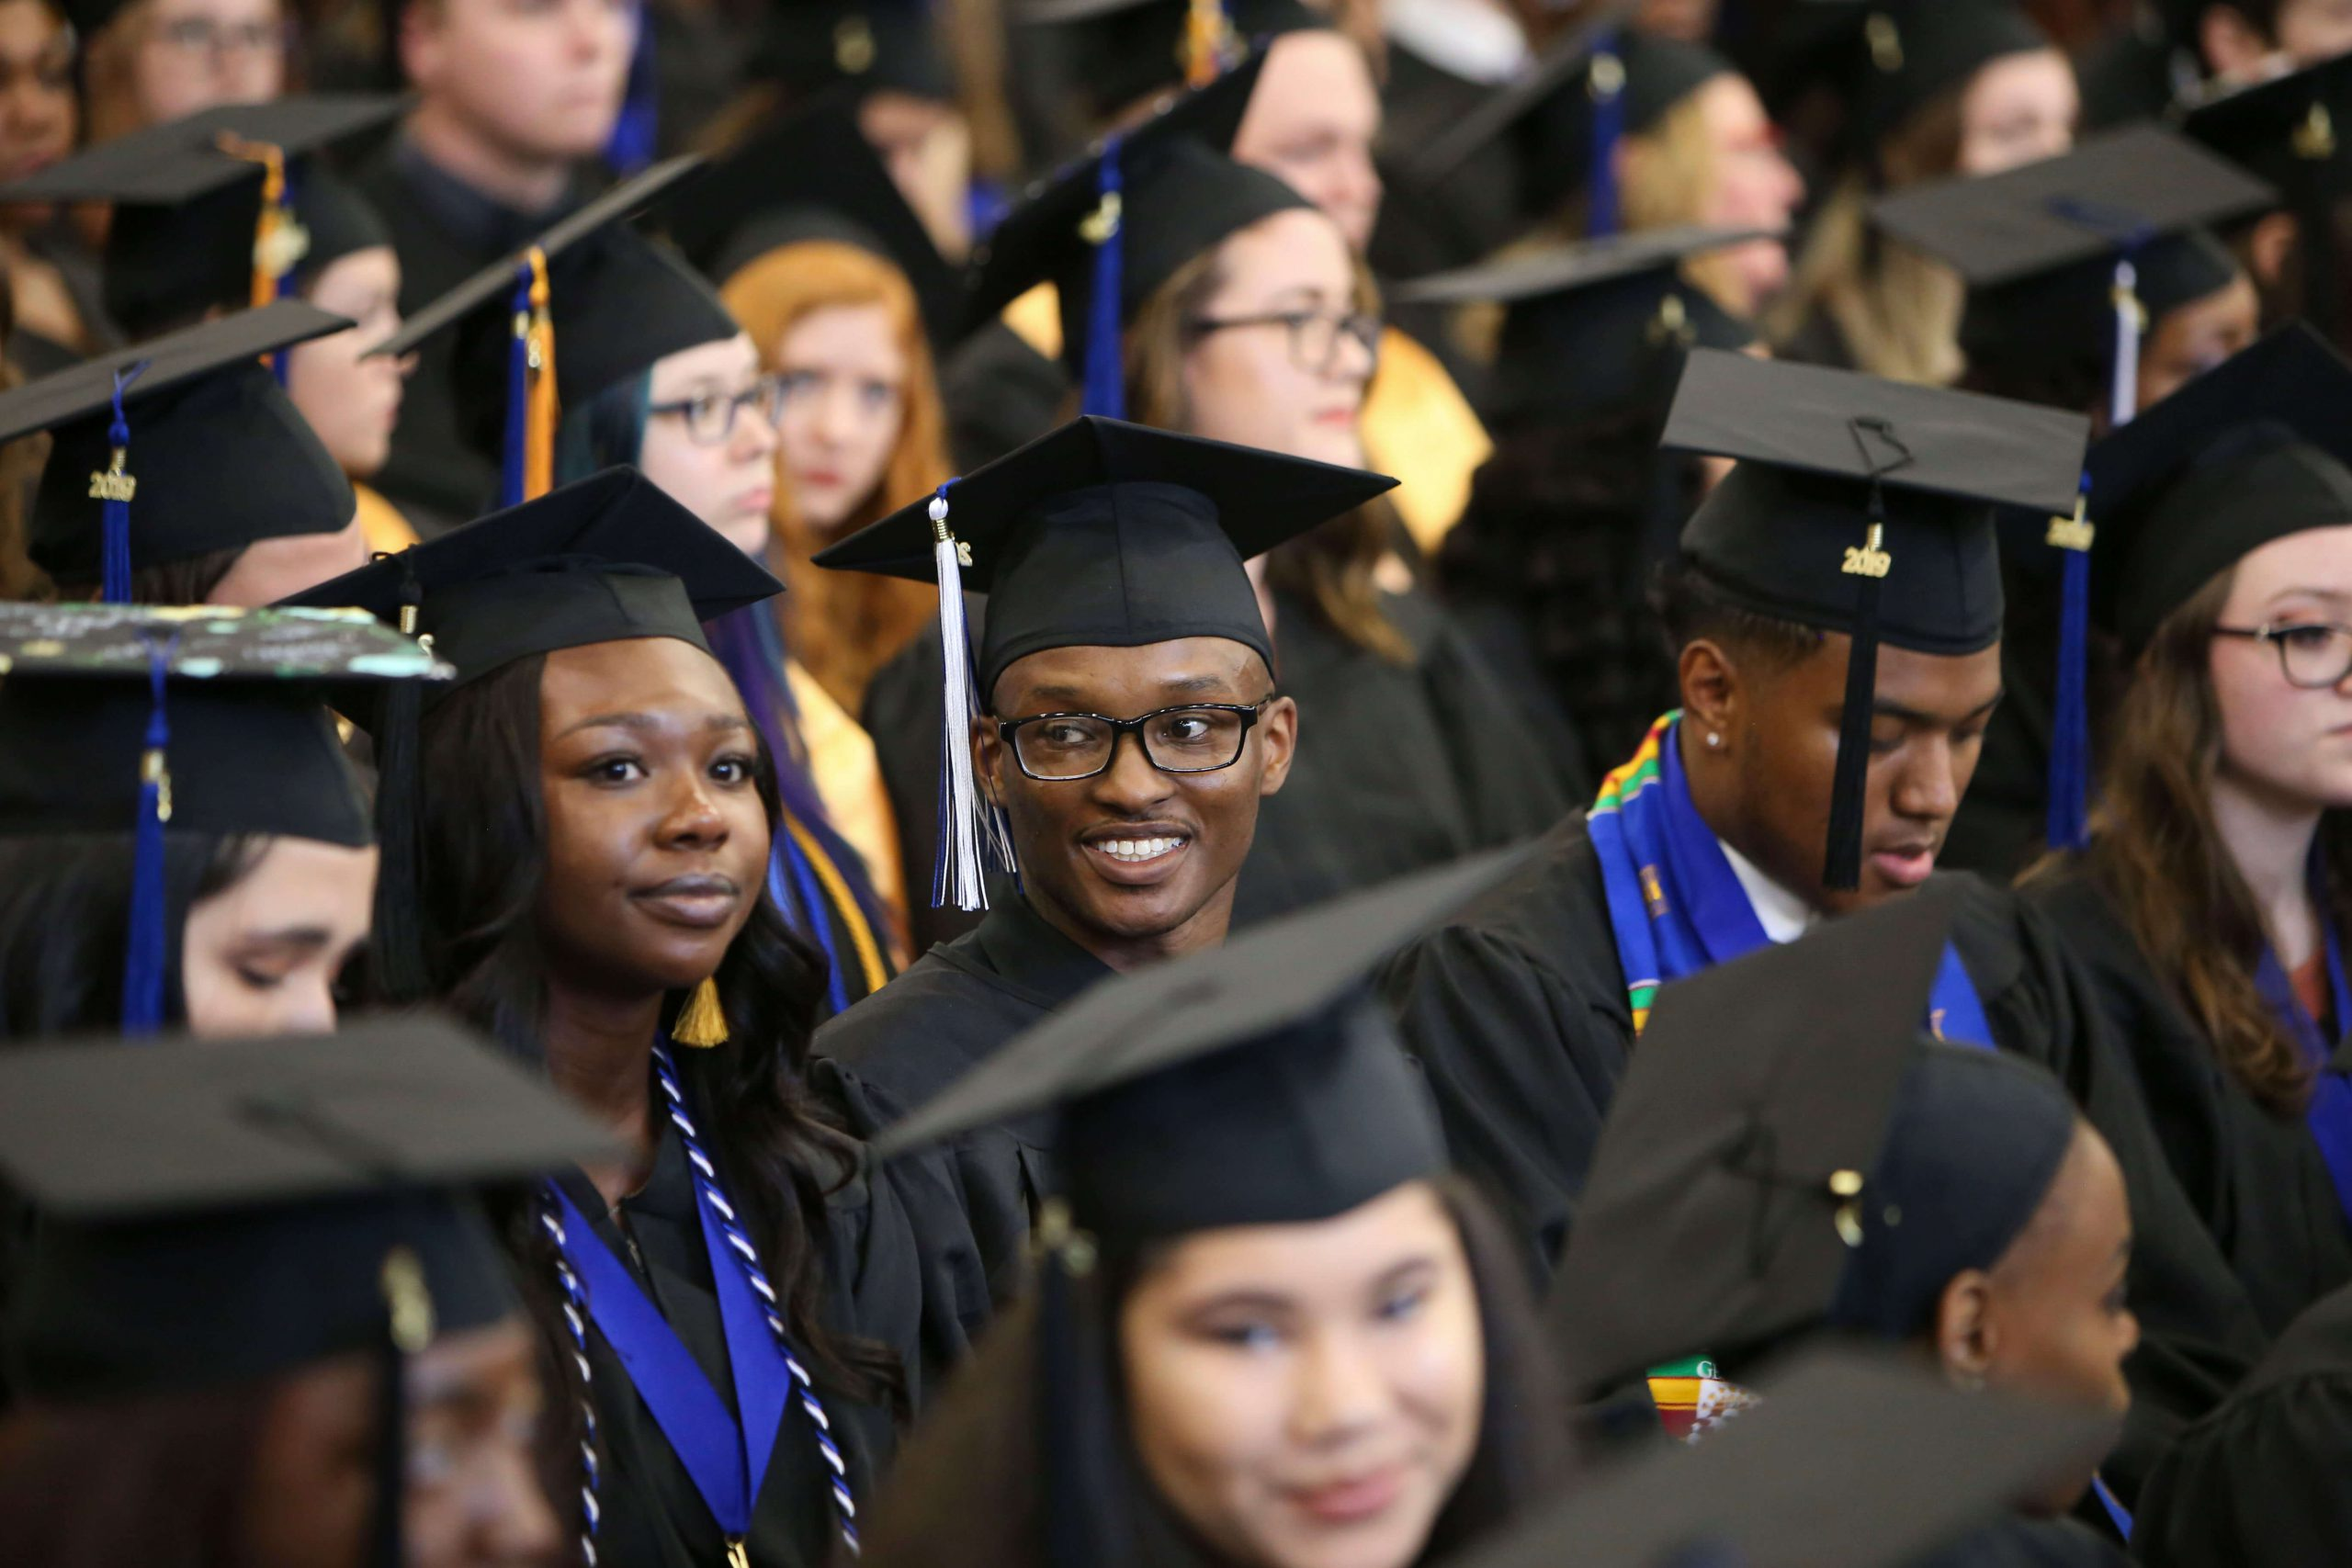 SWIC file photo of Graduation commencement ceremony.